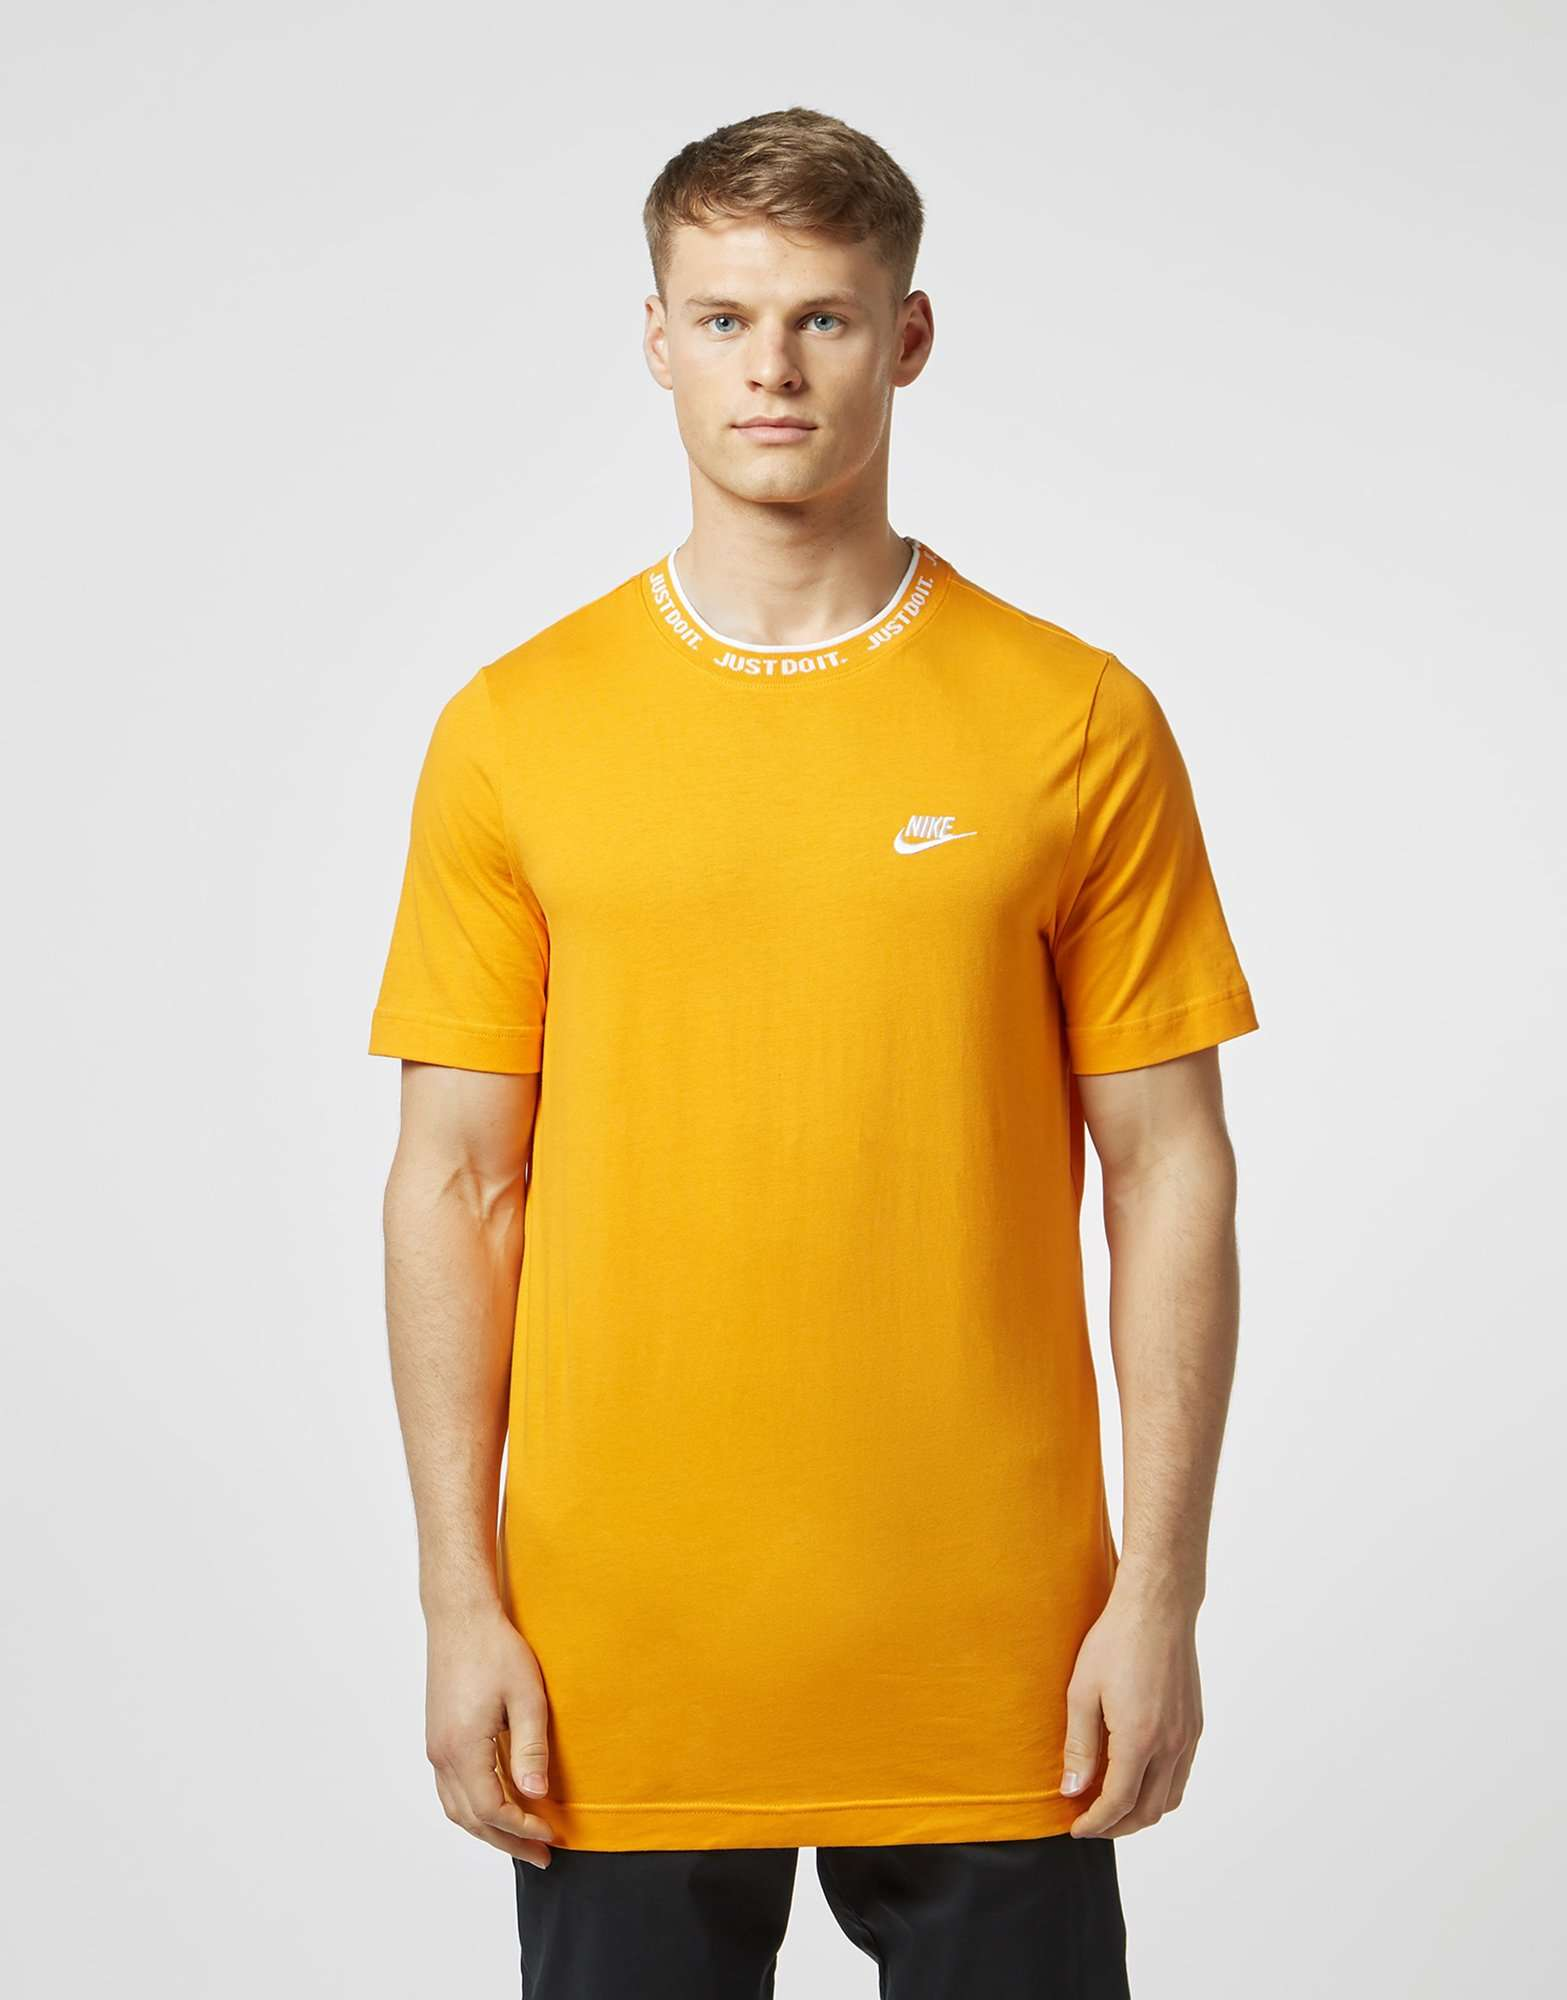 Nike Just Do It Neck Short Sleeve T-Shirt